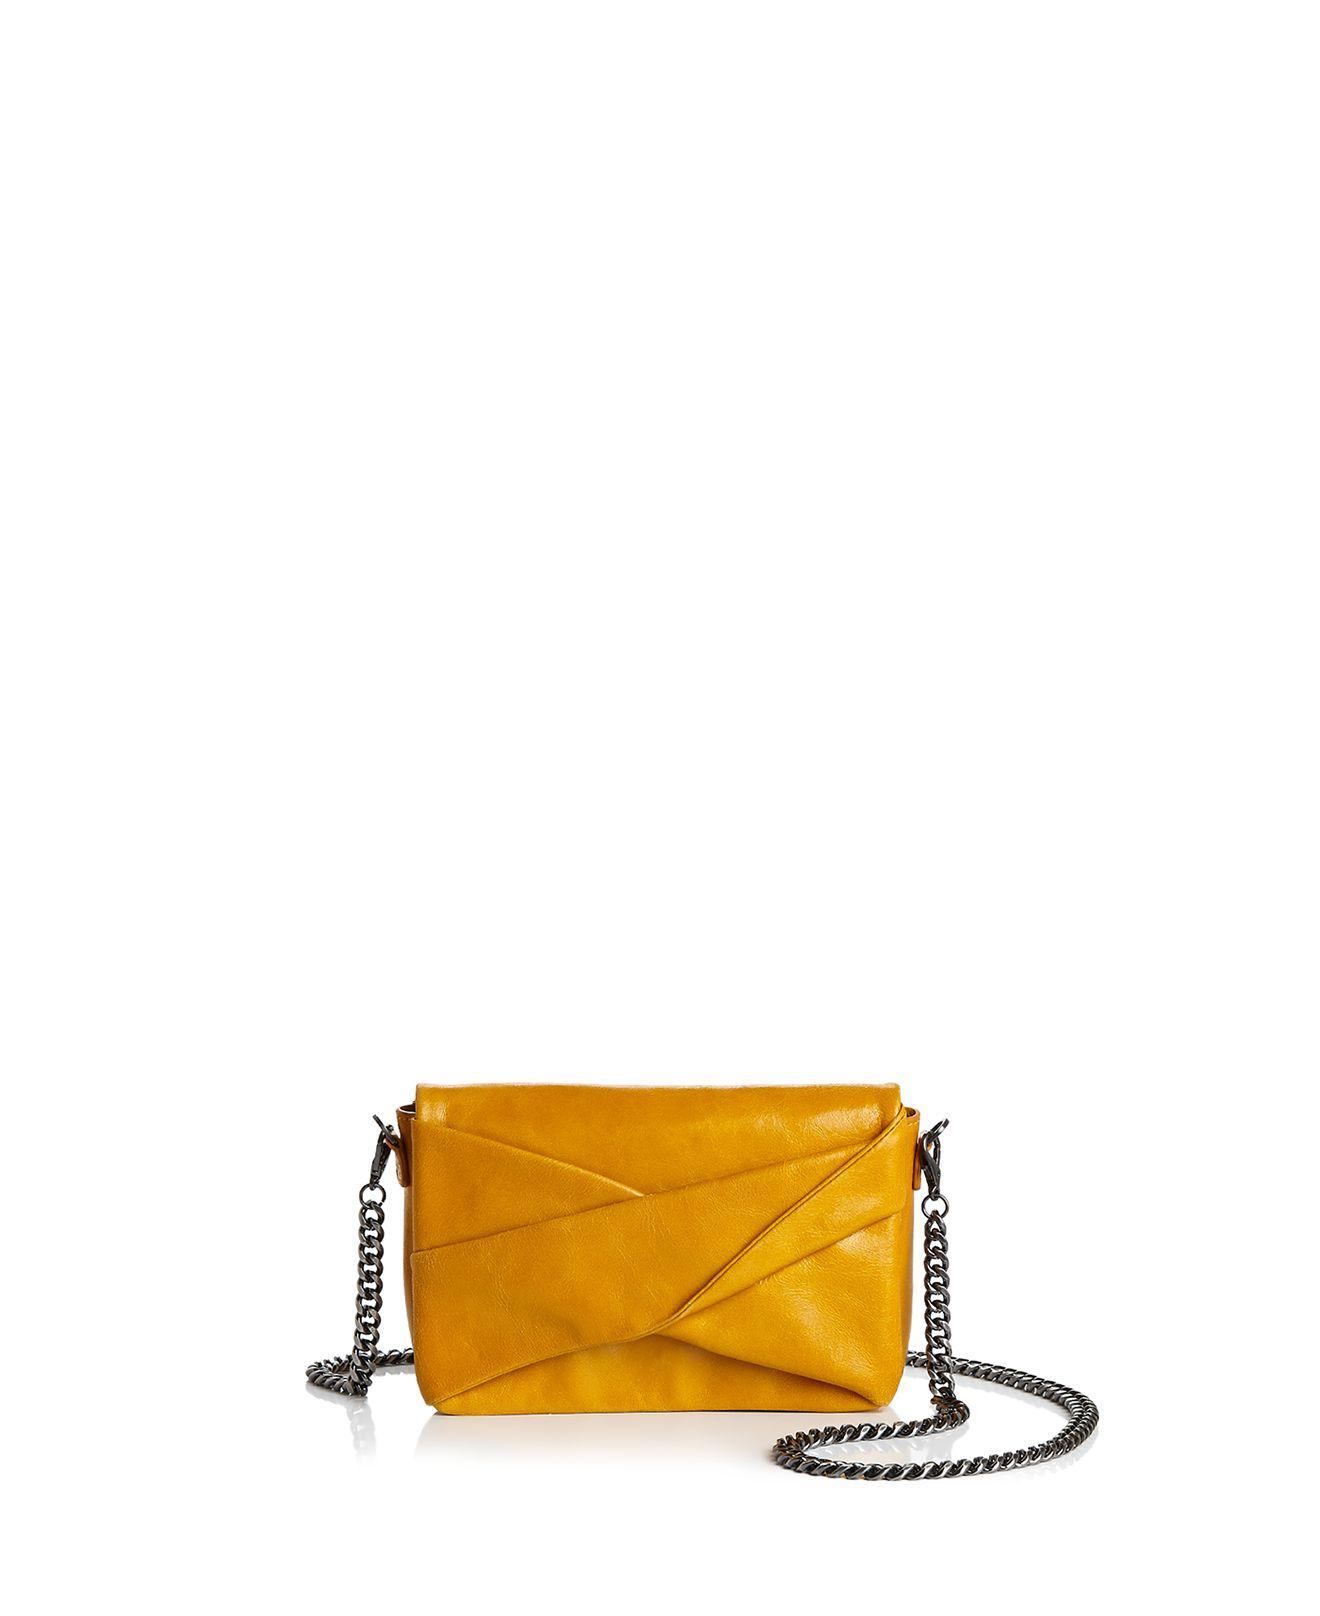 Halston Heritage Grace Small Bow Convertible Leather Crossbody Best Choice Geniue Stockist Cheap Price New y4f1eeidL